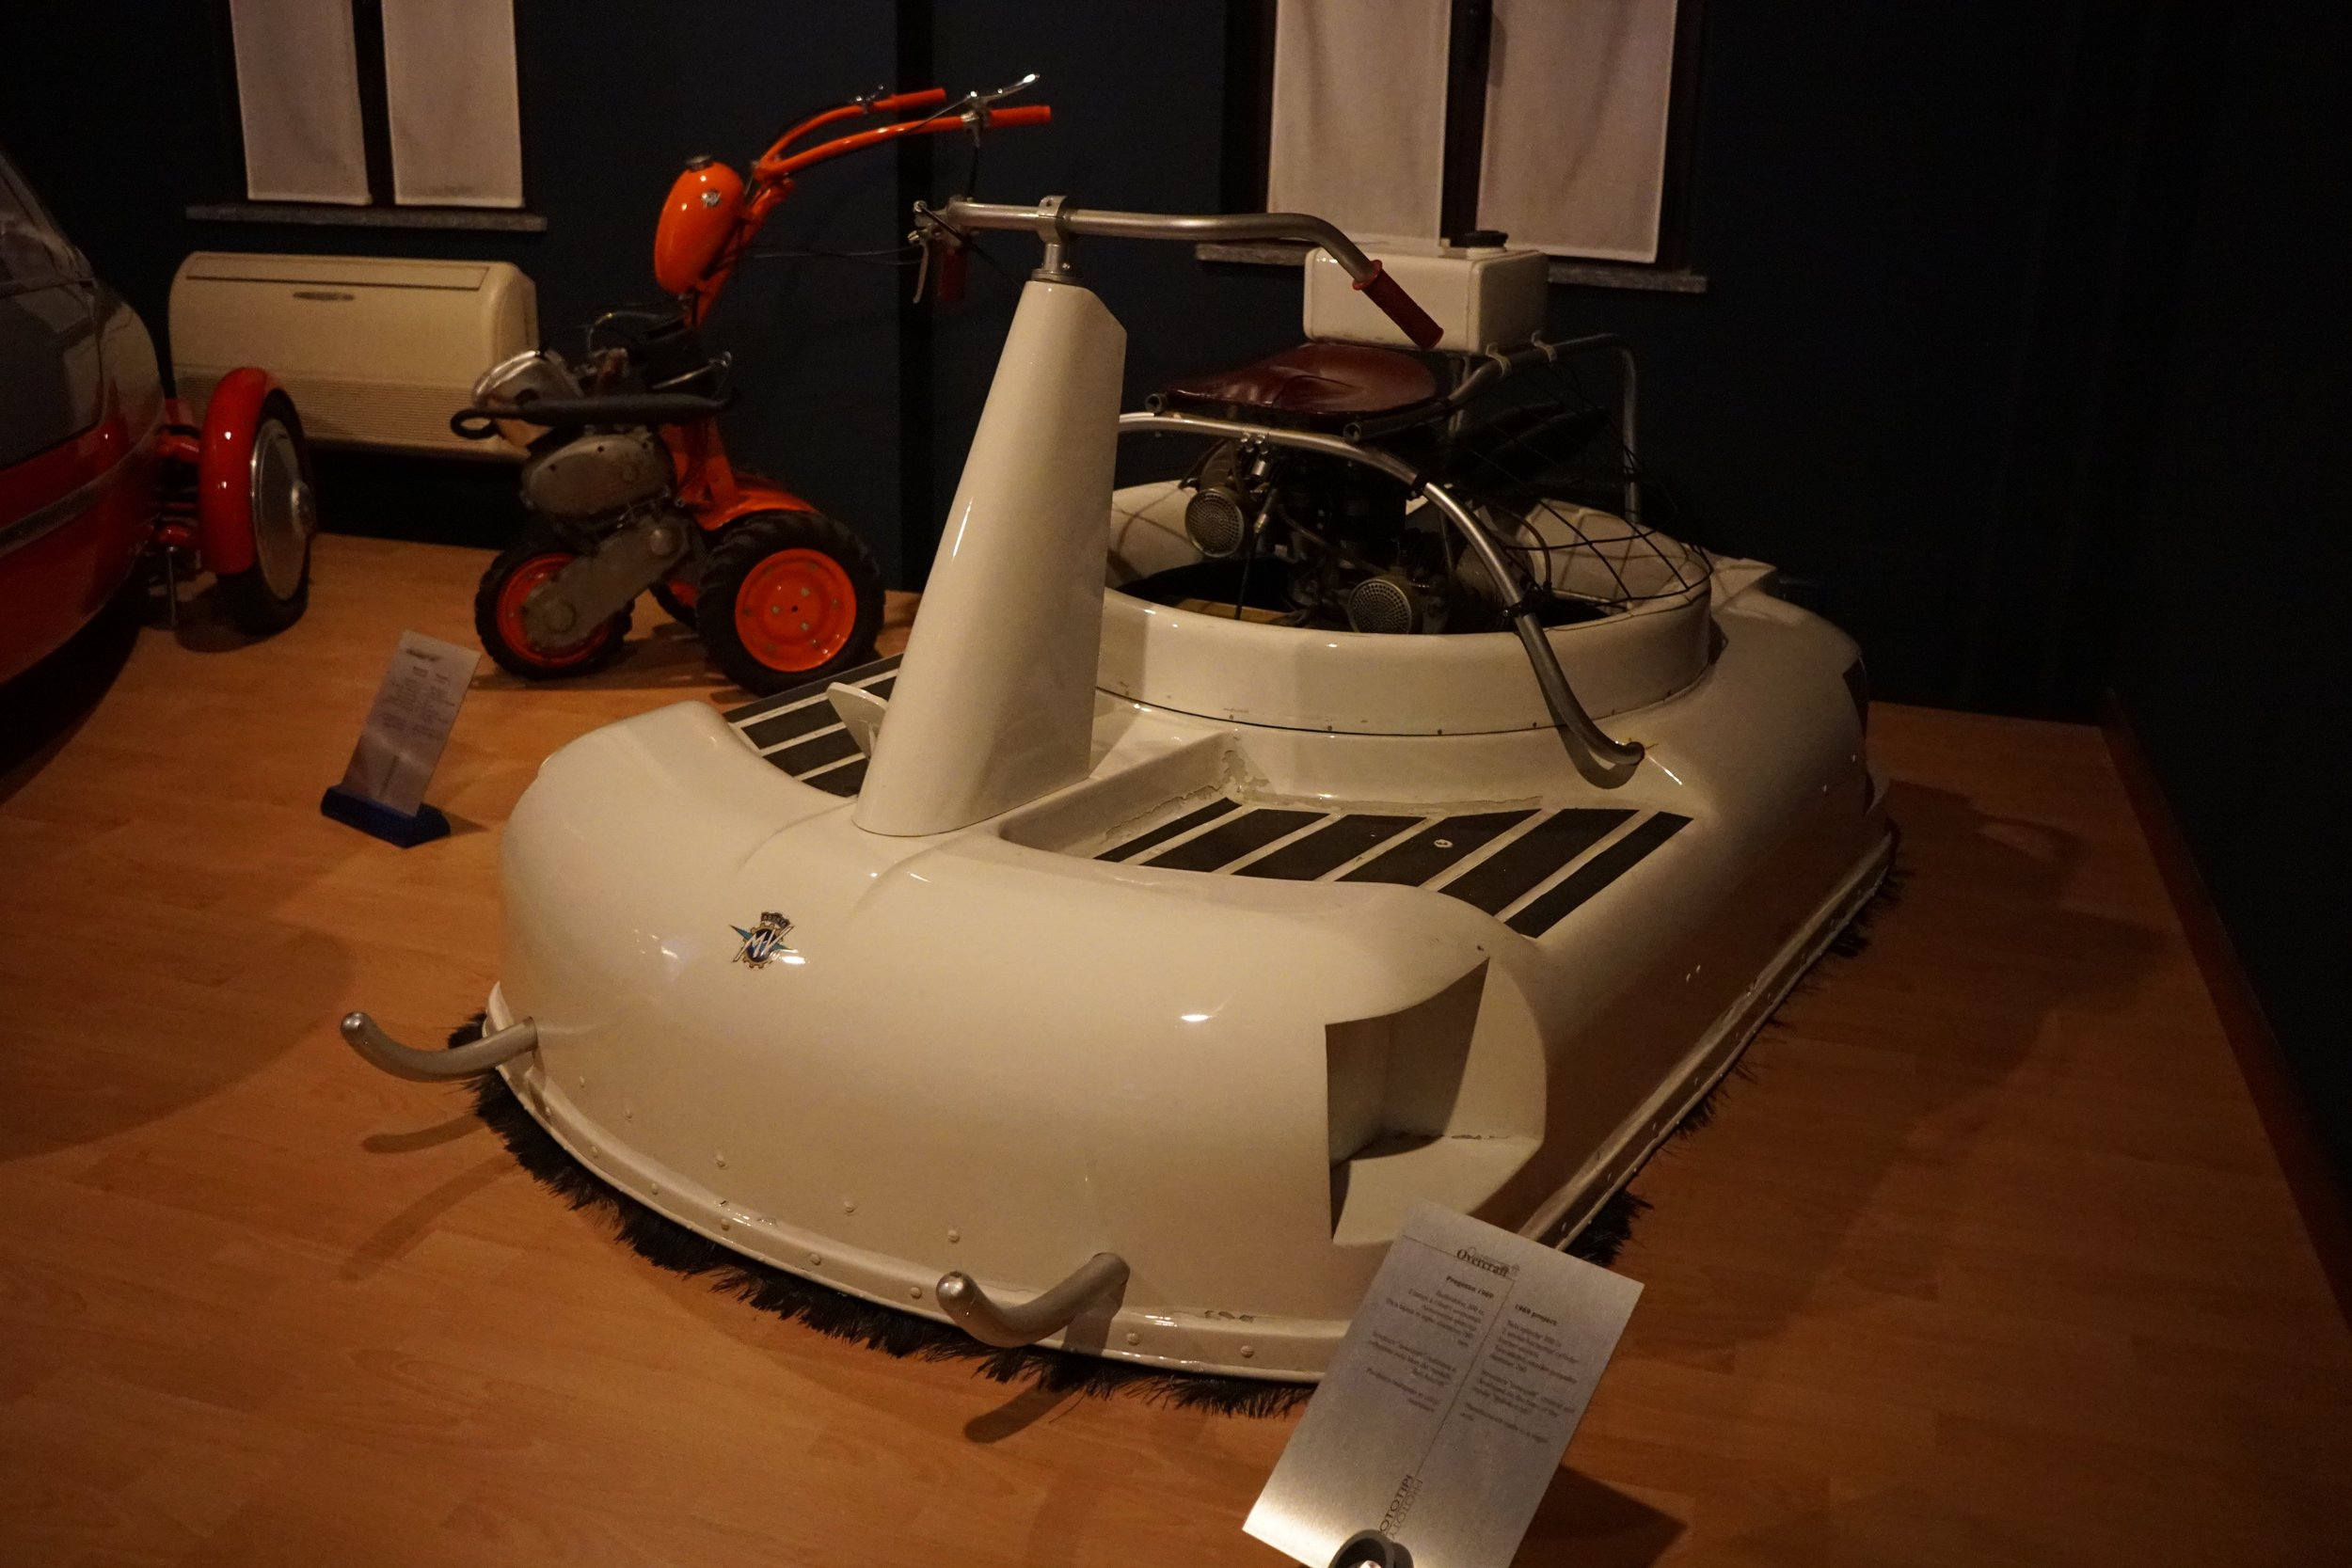 '69 Prototype Hovercraft – This 1969 full working prototype was powered by a 300cc two-stroke boxer motor.